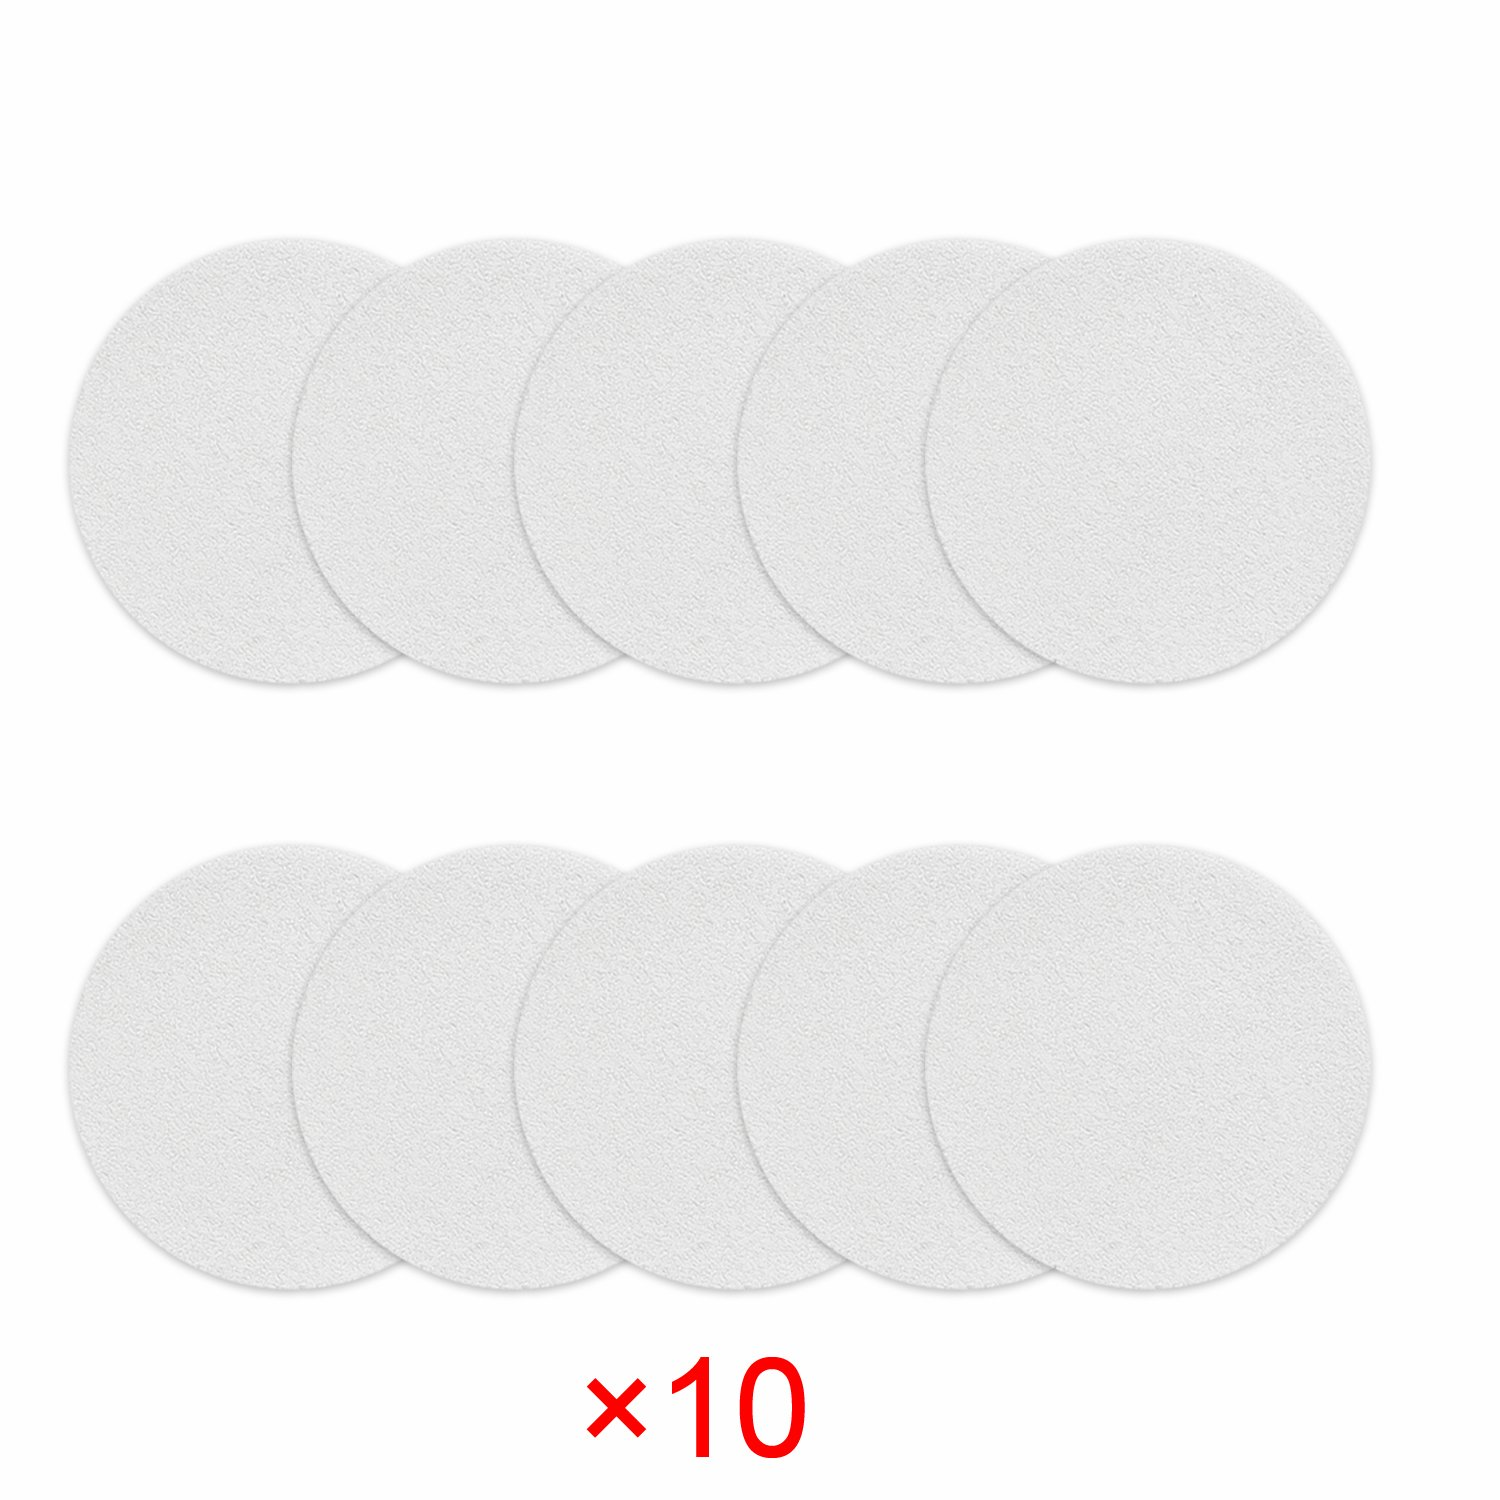 Incutex 8x anti-slip strips for bathtub and shower, 38 cm long - 2 cm wide, self-adhesive, transparent